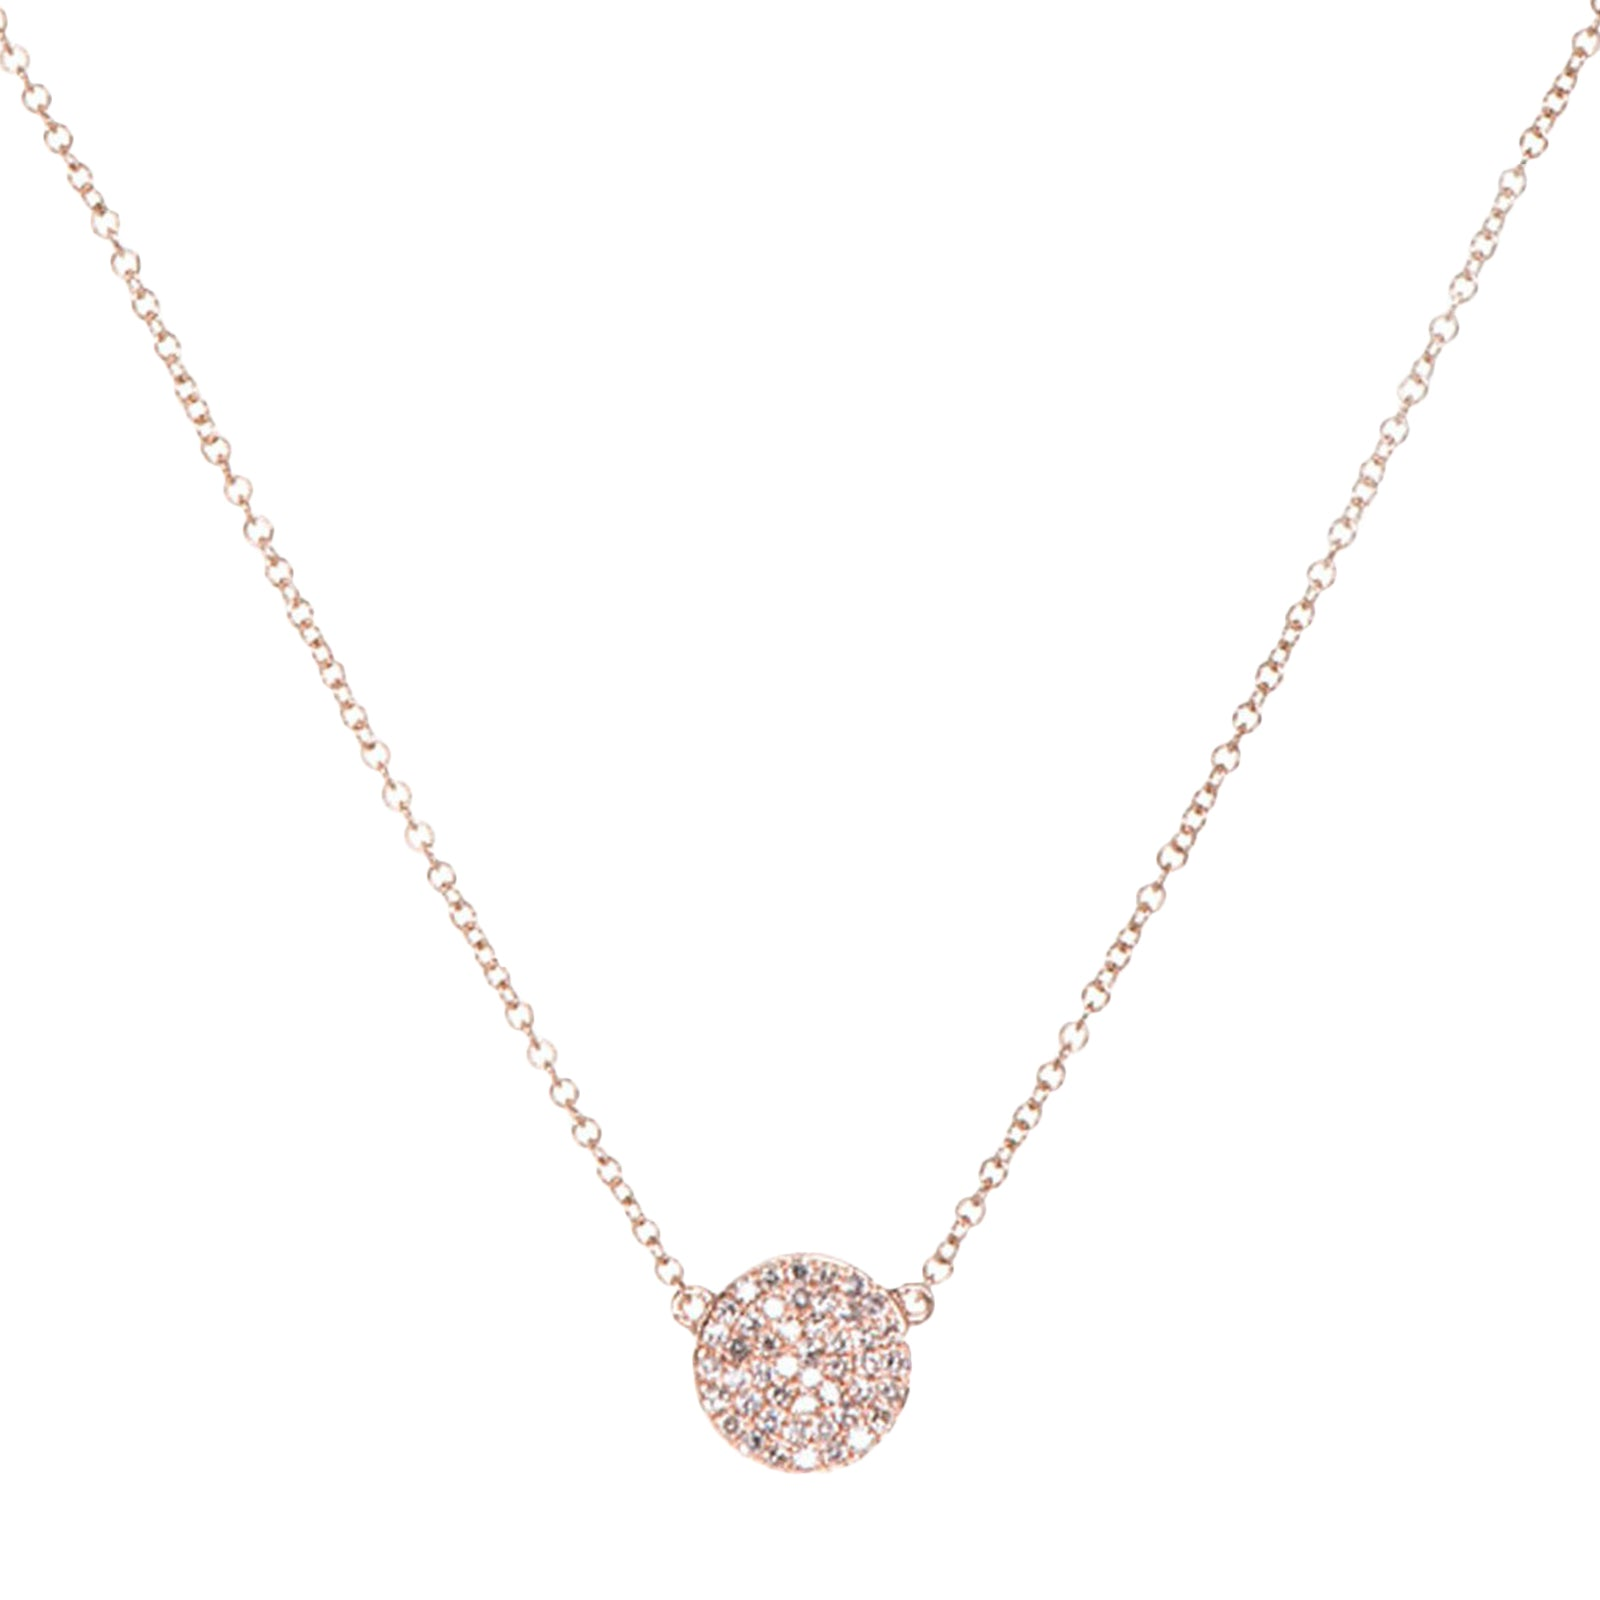 EF Collection Diamond Disk Necklace - Rose Gold - Necklaces - Broken English Jewelry